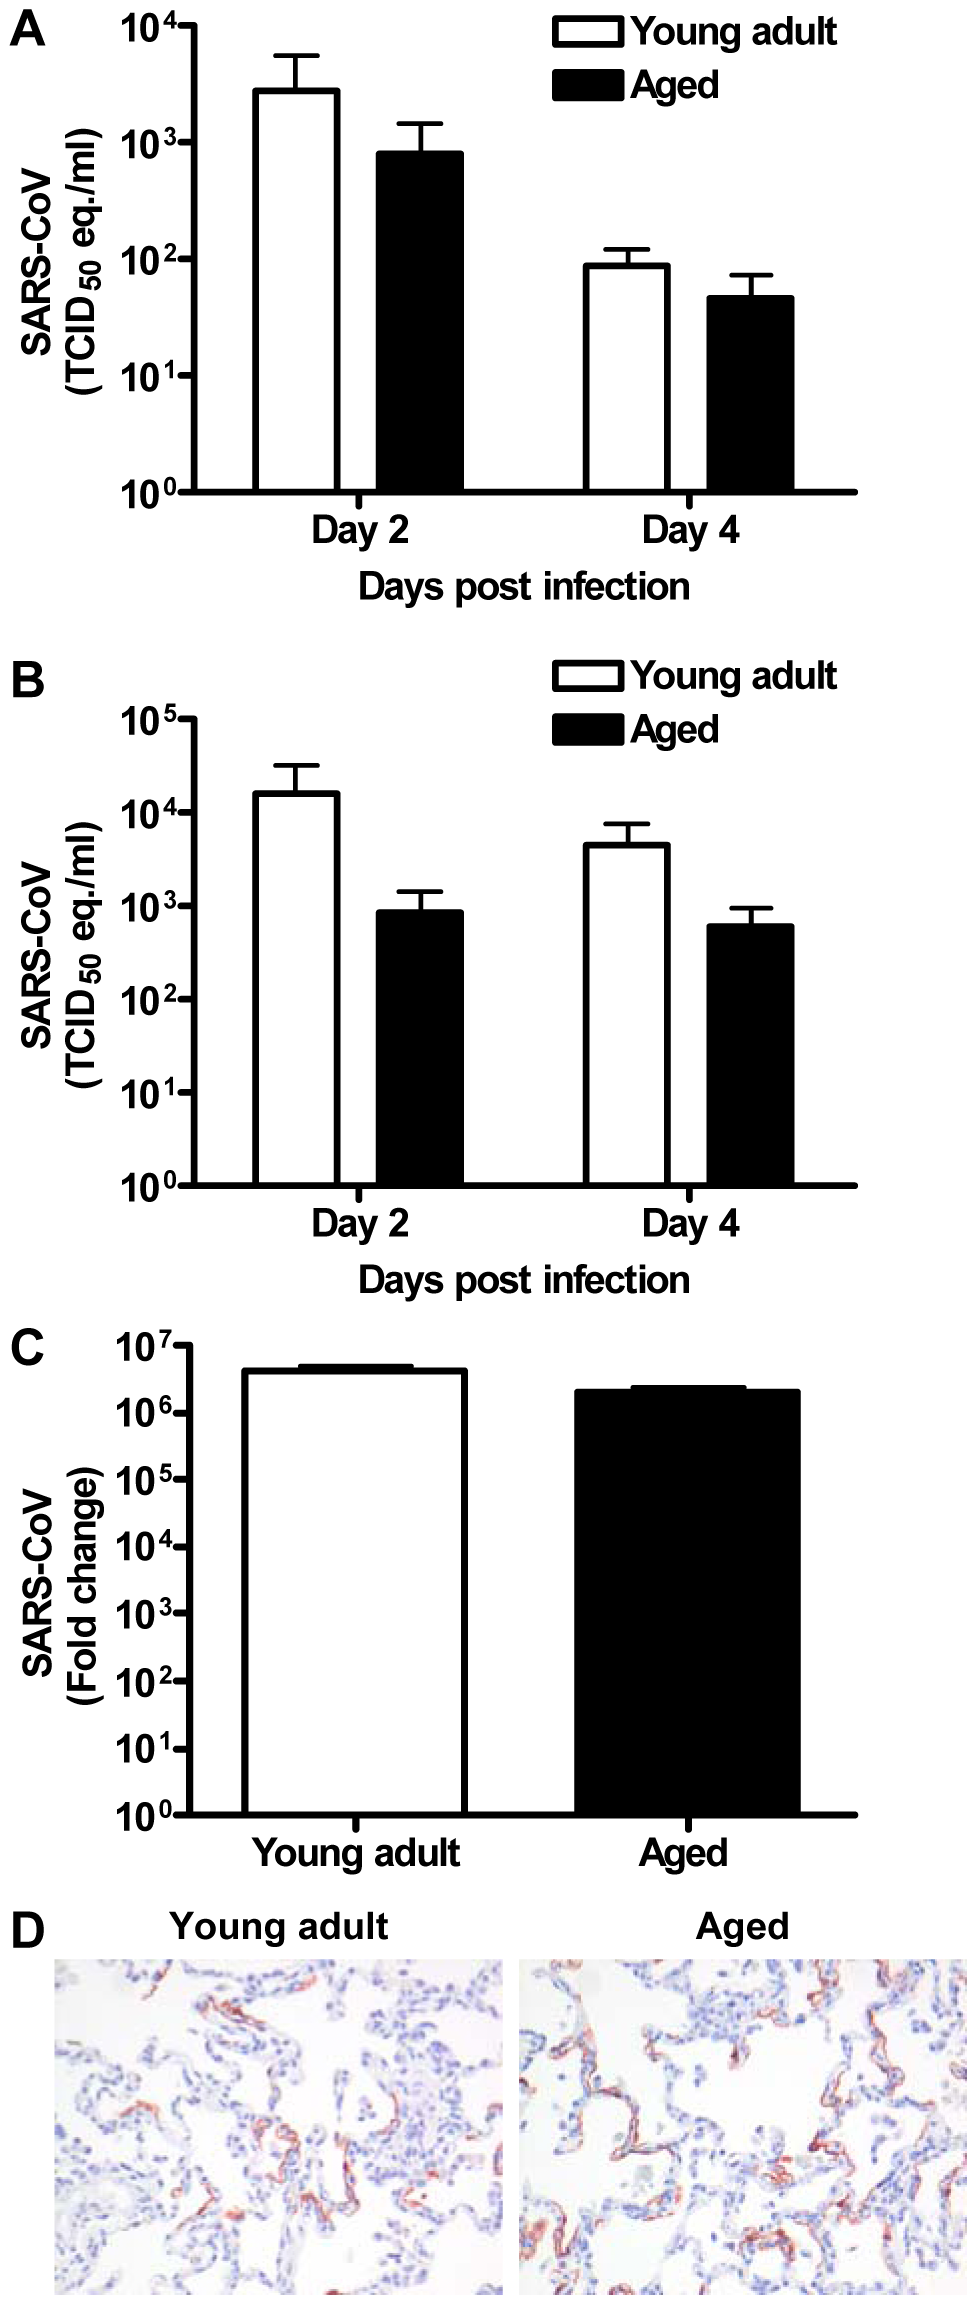 Viral replication levels in SARS-CoV-infected aged and young adult macaques are similar.